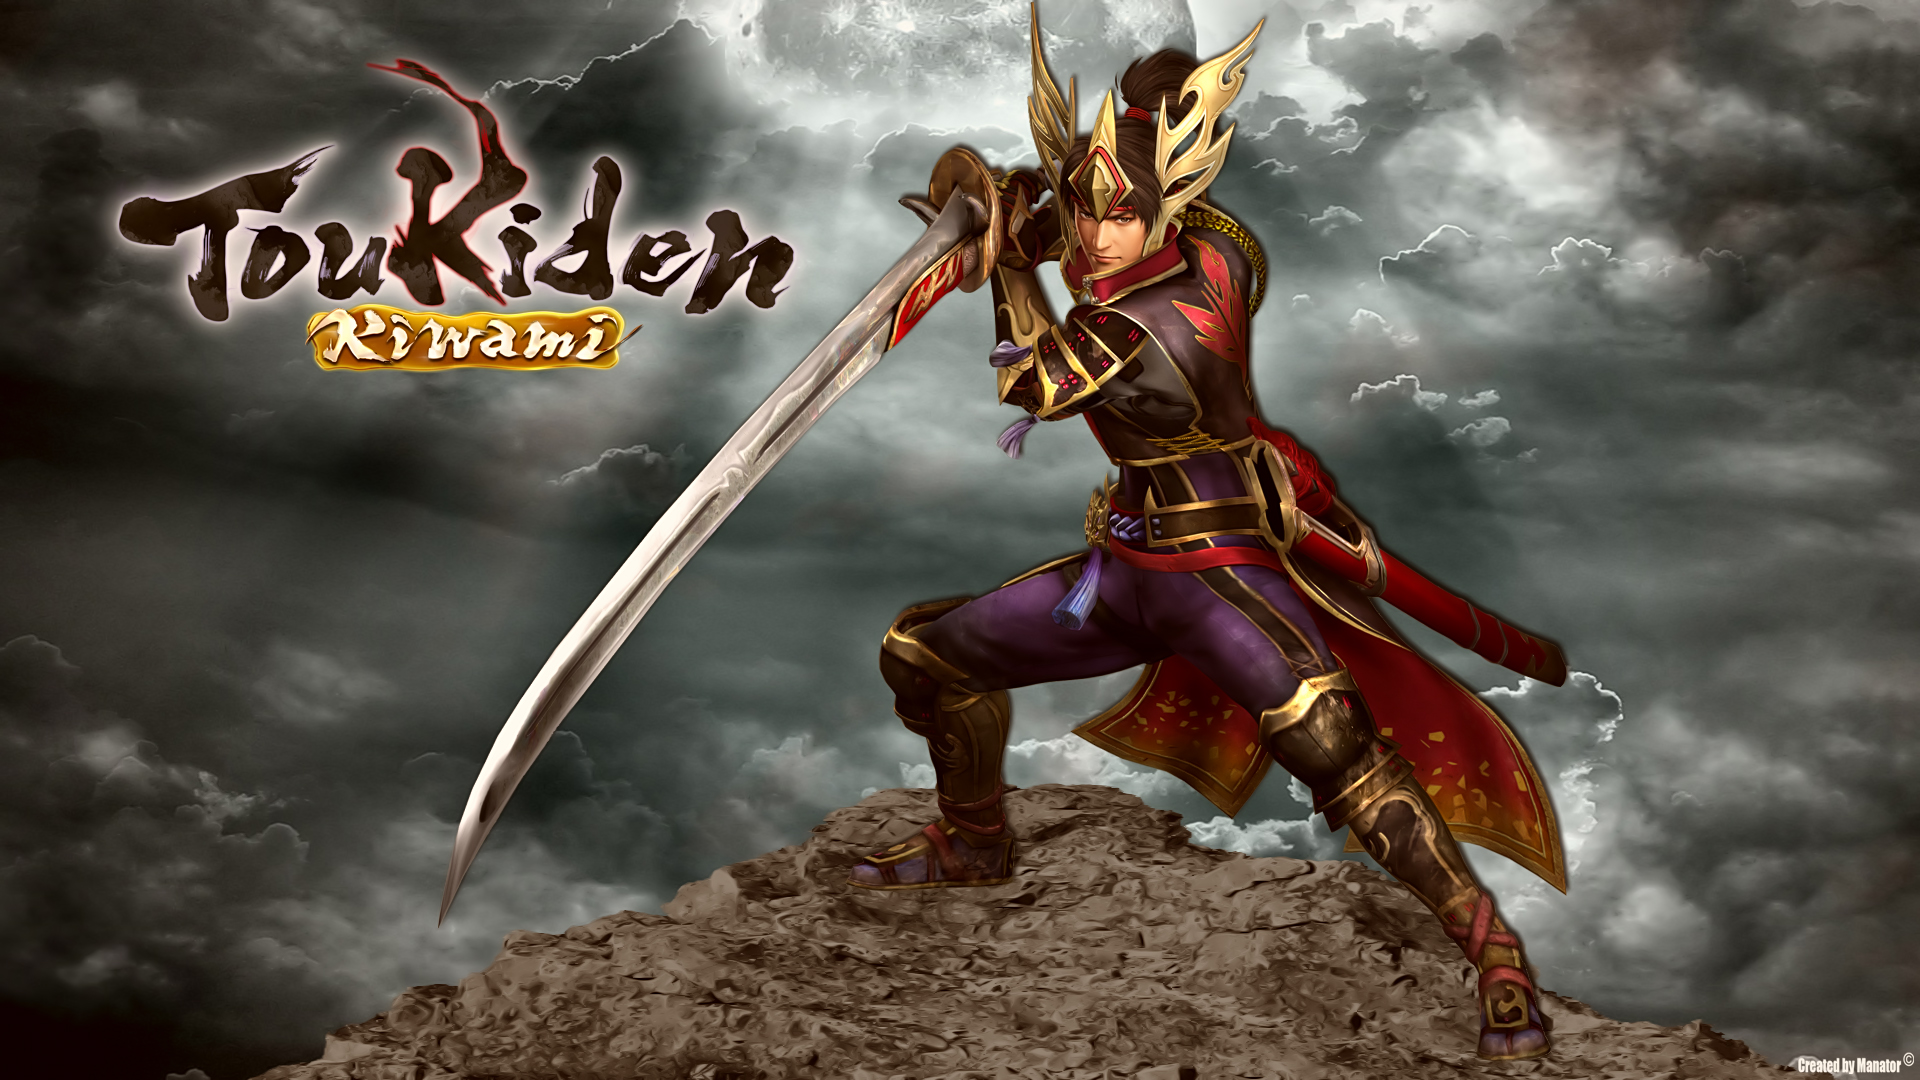 Toukiden Kiwami crack pc